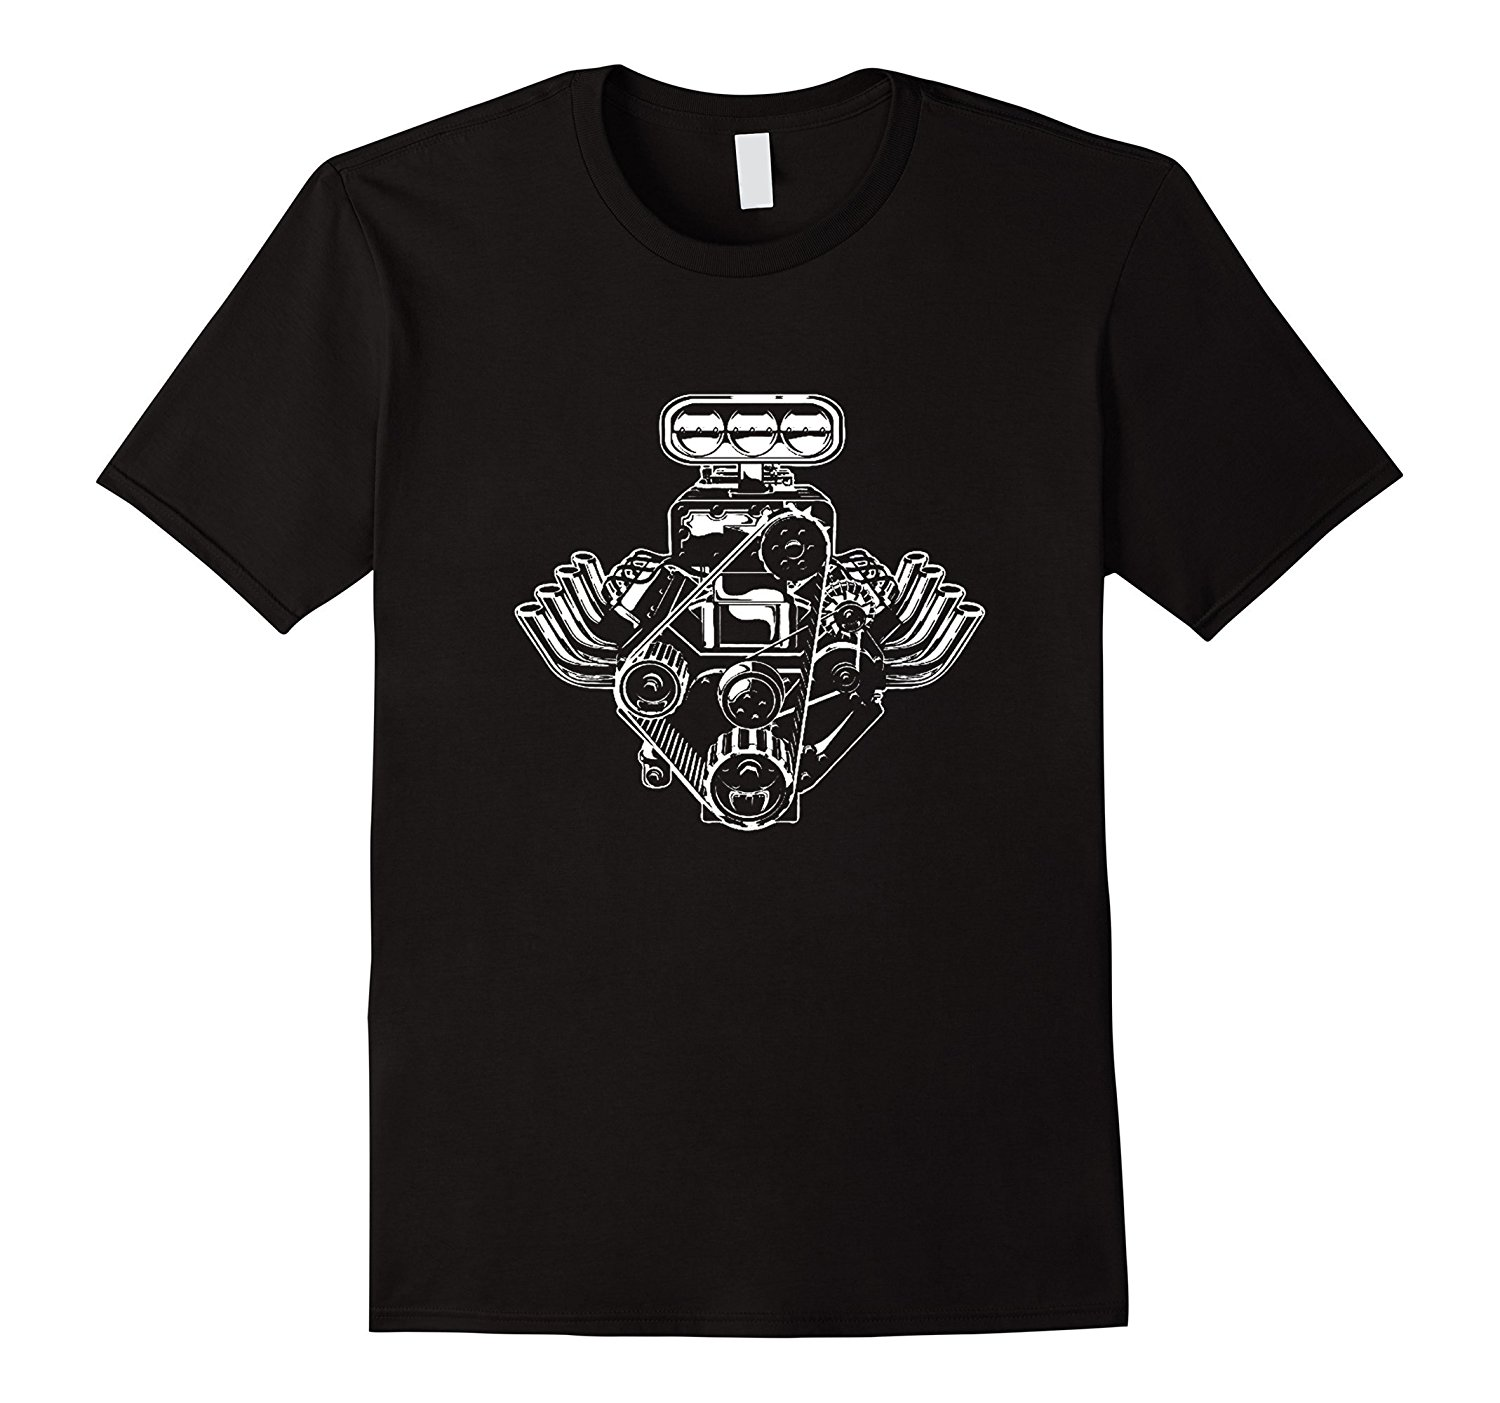 Cotton T Shirt Printed T Shirt Crew Neck Short-Sleeve Compression Car Engine Motor T-Shirt American Muscle Car Pistons Tee Shi